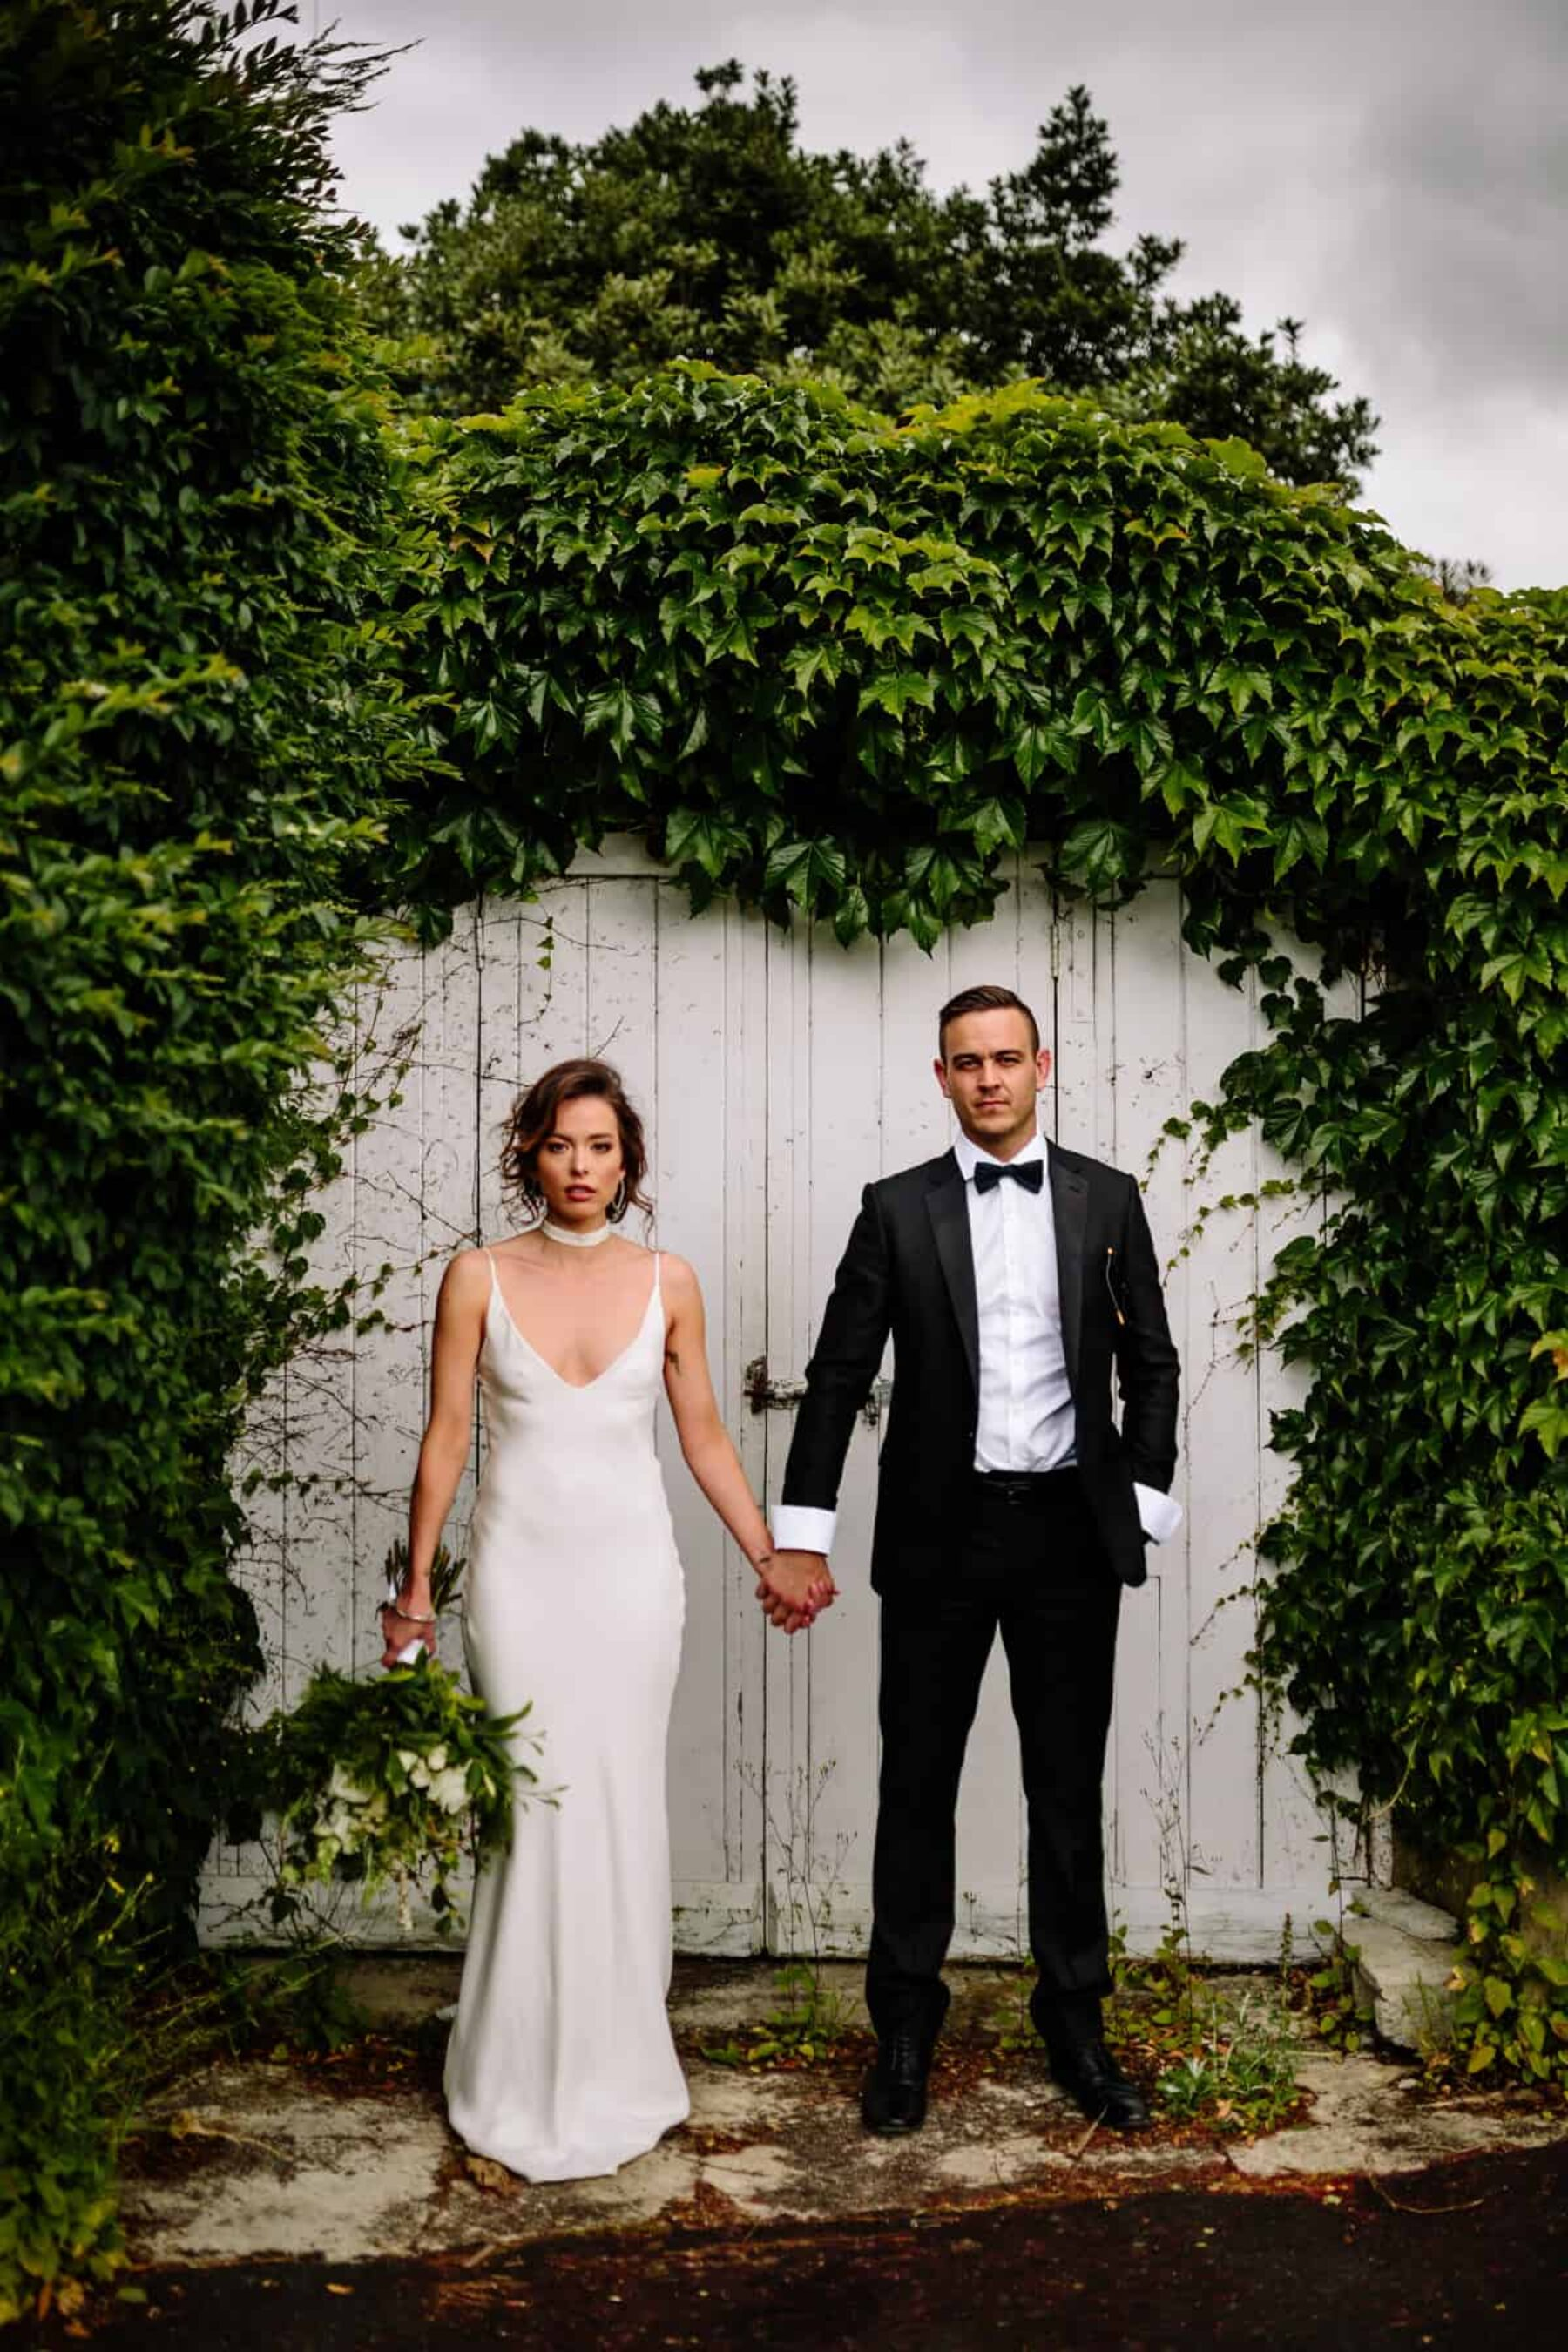 Modern wedding inspiration with plenty of greenery